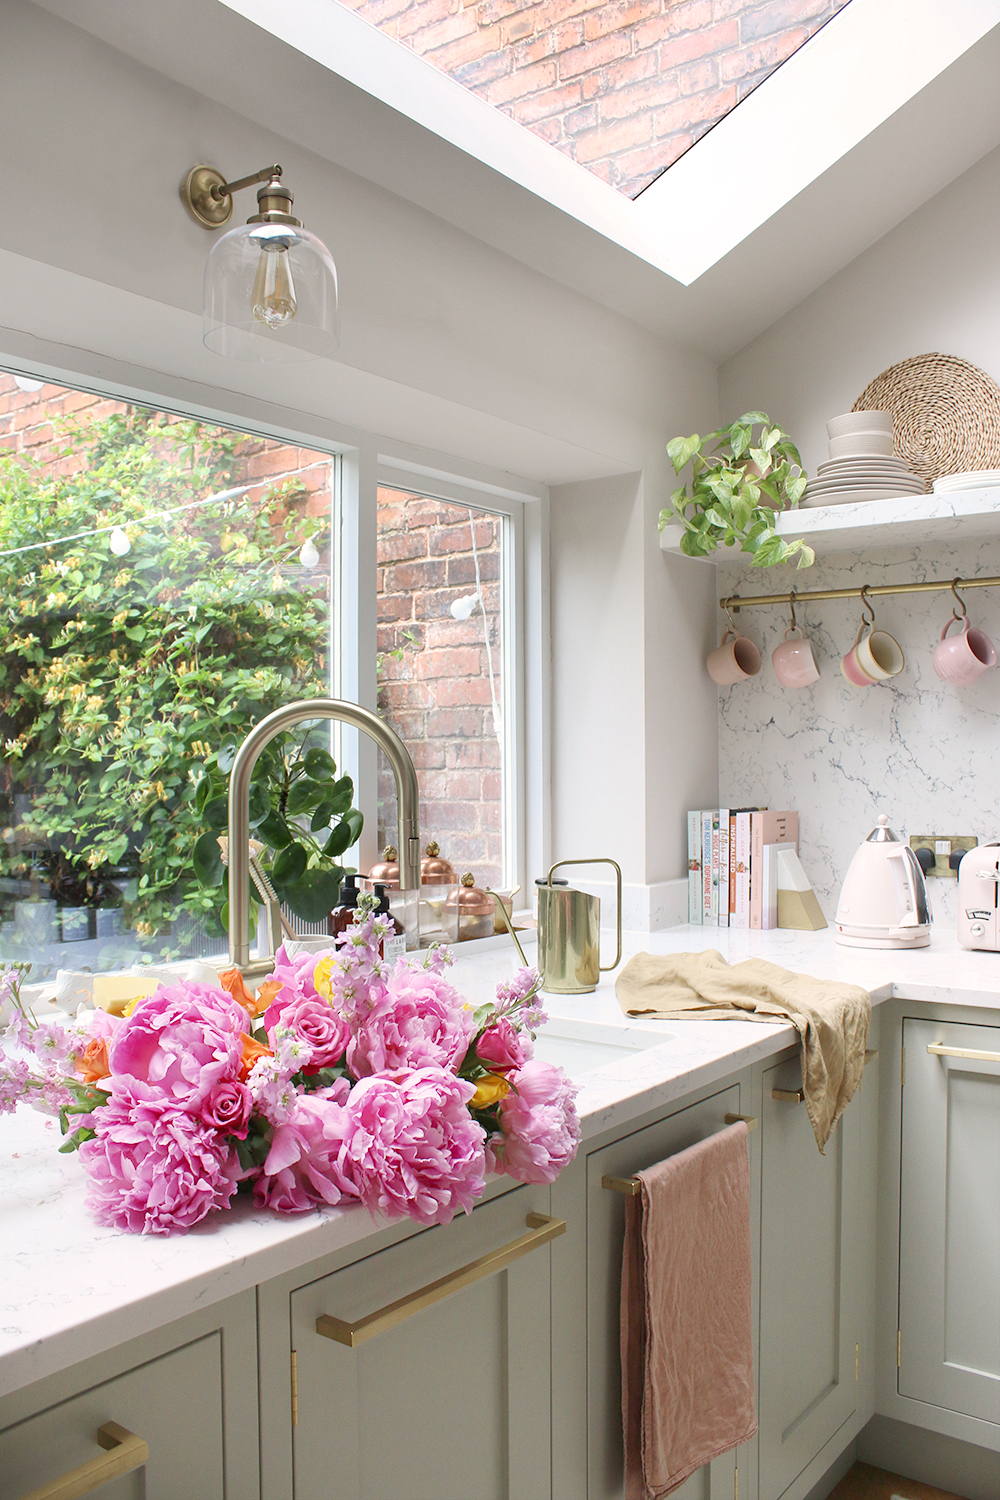 green and marble kitchen with pink peonies in the sink